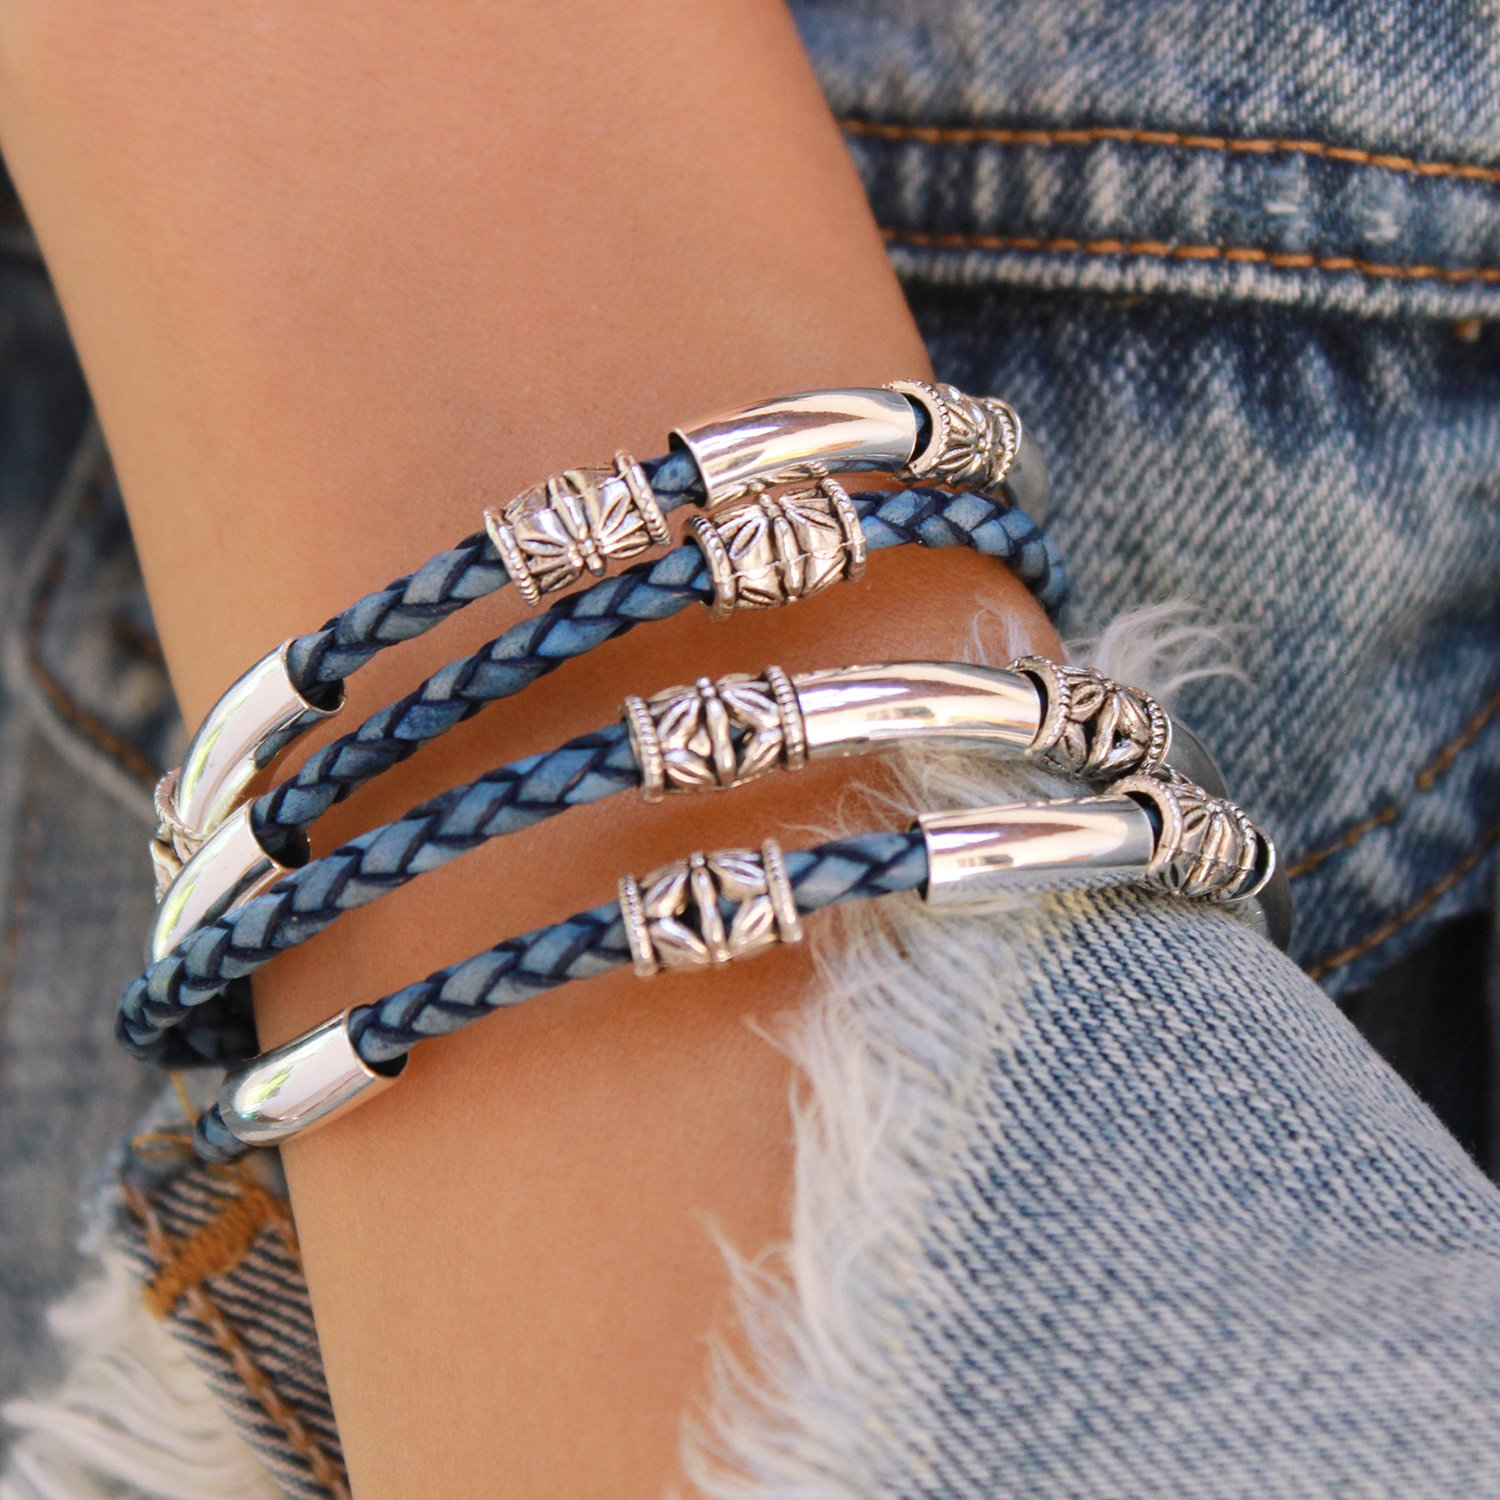 Lizzy James Mini Maxi Silver Plated Braided Leather Wrap Bracelet in Natural Blue Leather (Small) by Lizzy James (Image #2)